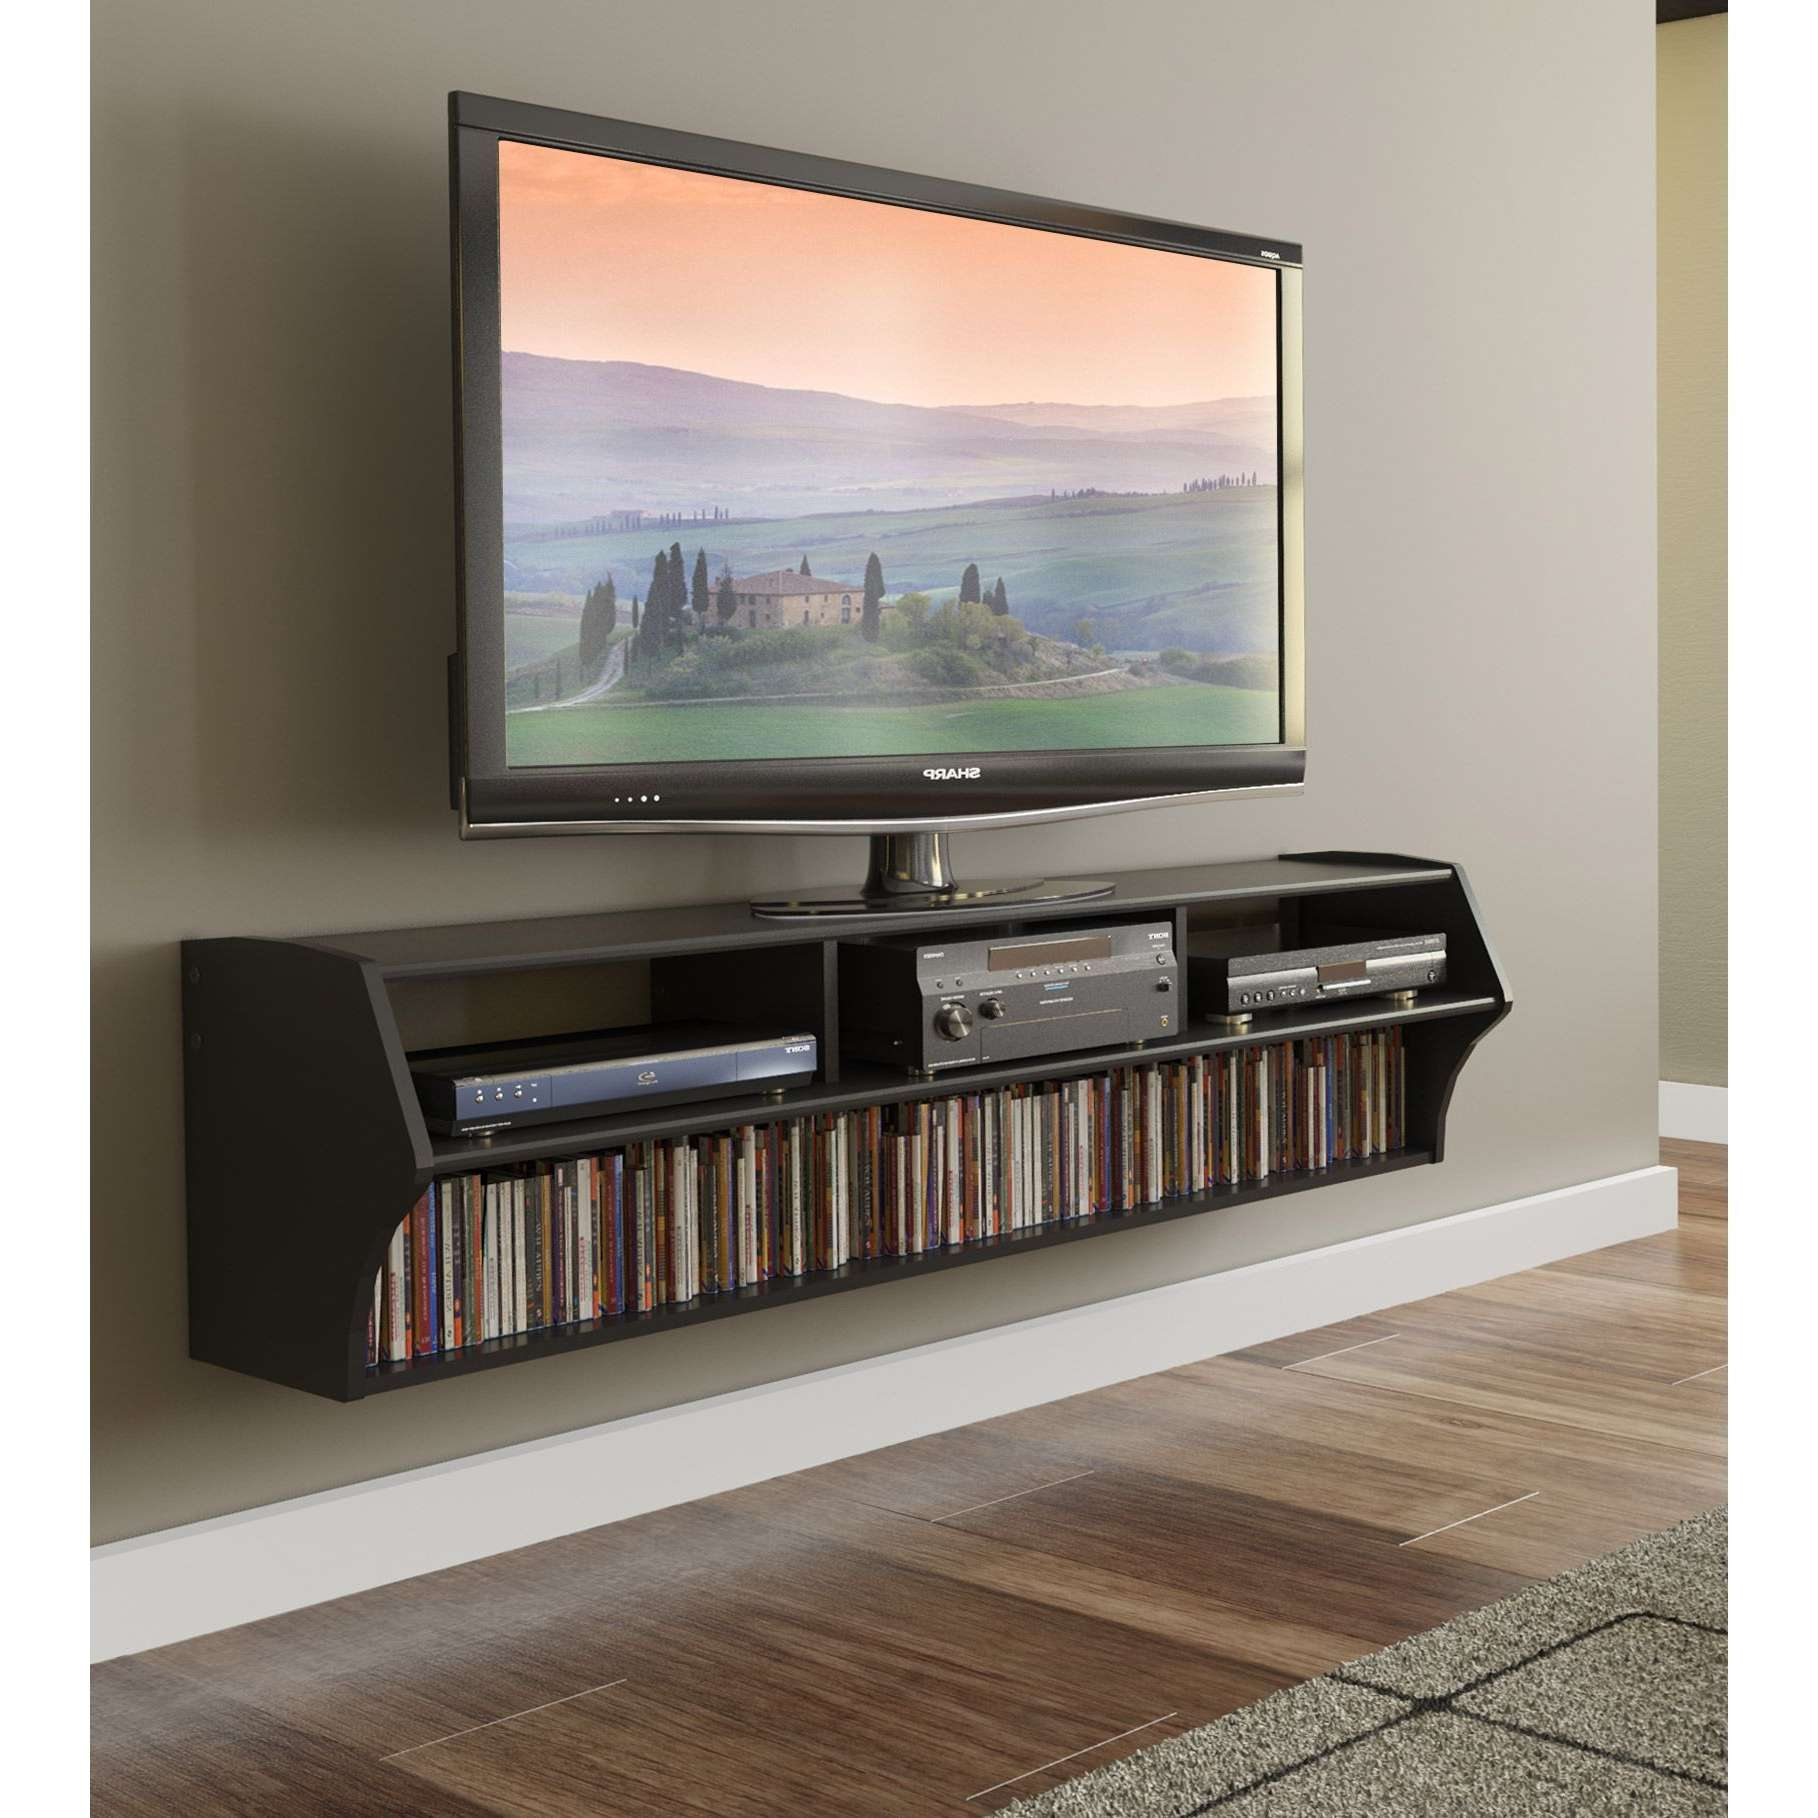 Wall Mounted Tv Entertainment Center Enchanting On Home Decors For With Regard To Modern Tv Stands With Mount (View 15 of 15)